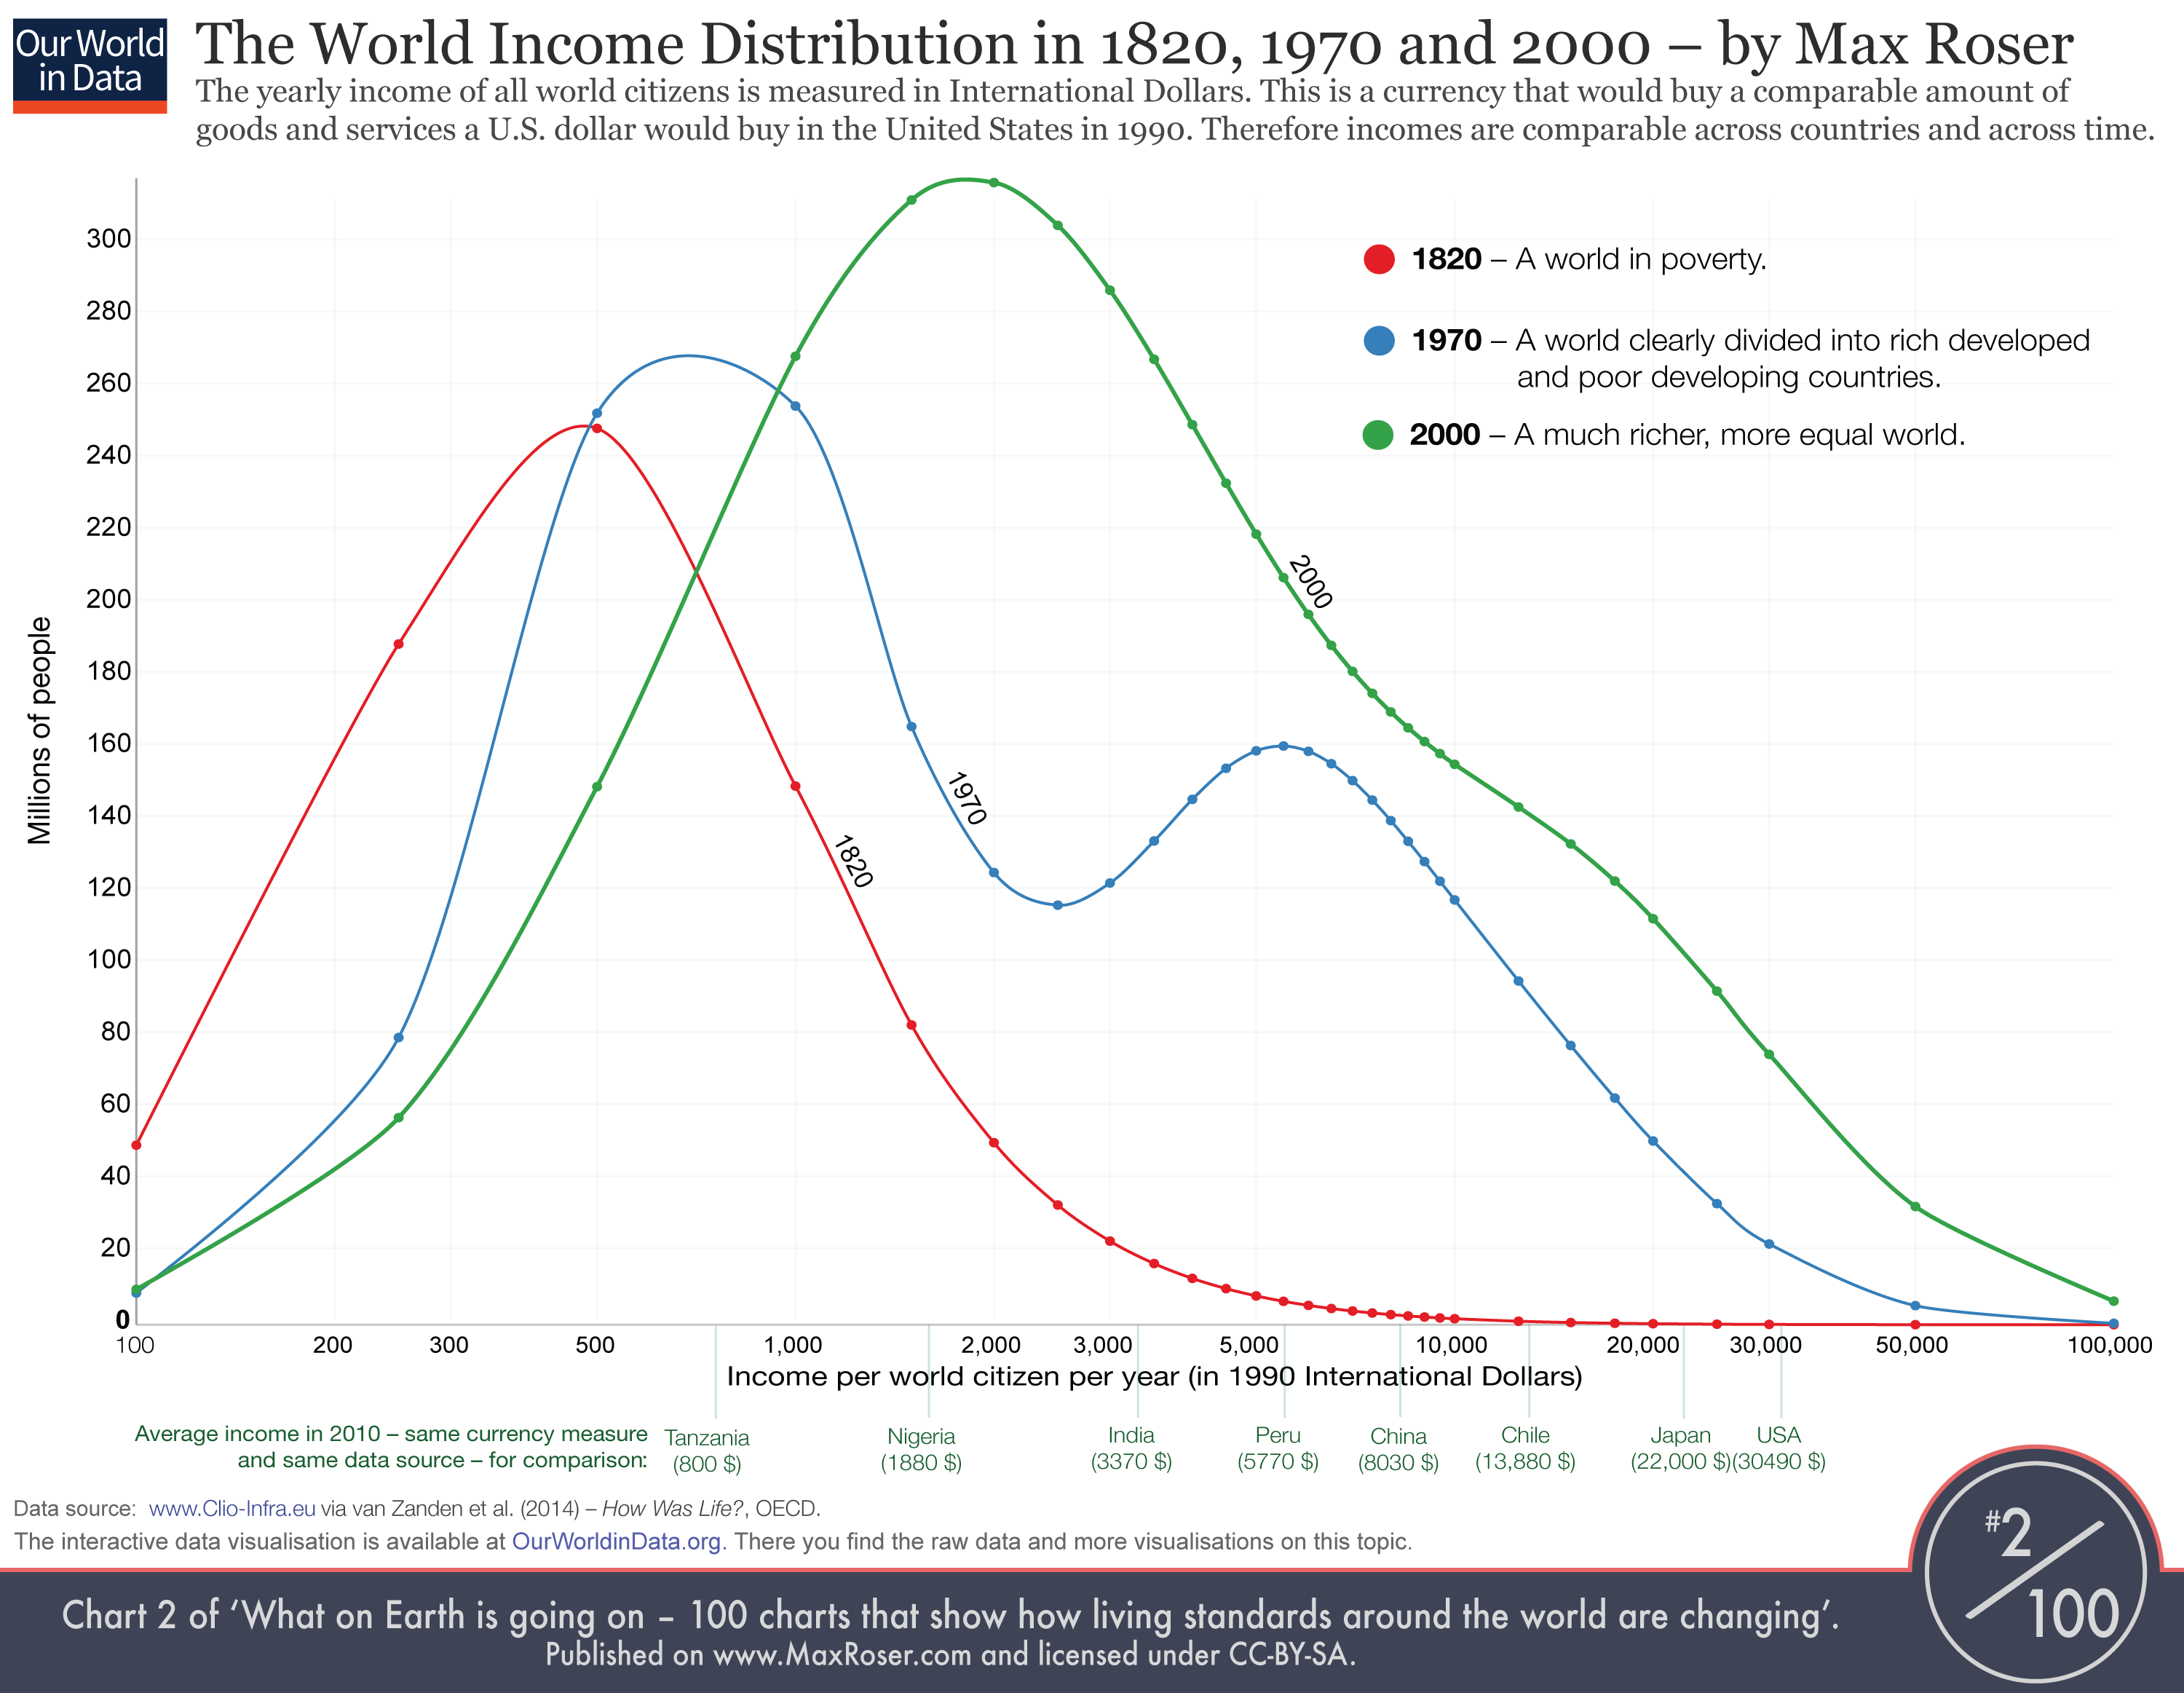 WorldIncomeDistribution1820to2000